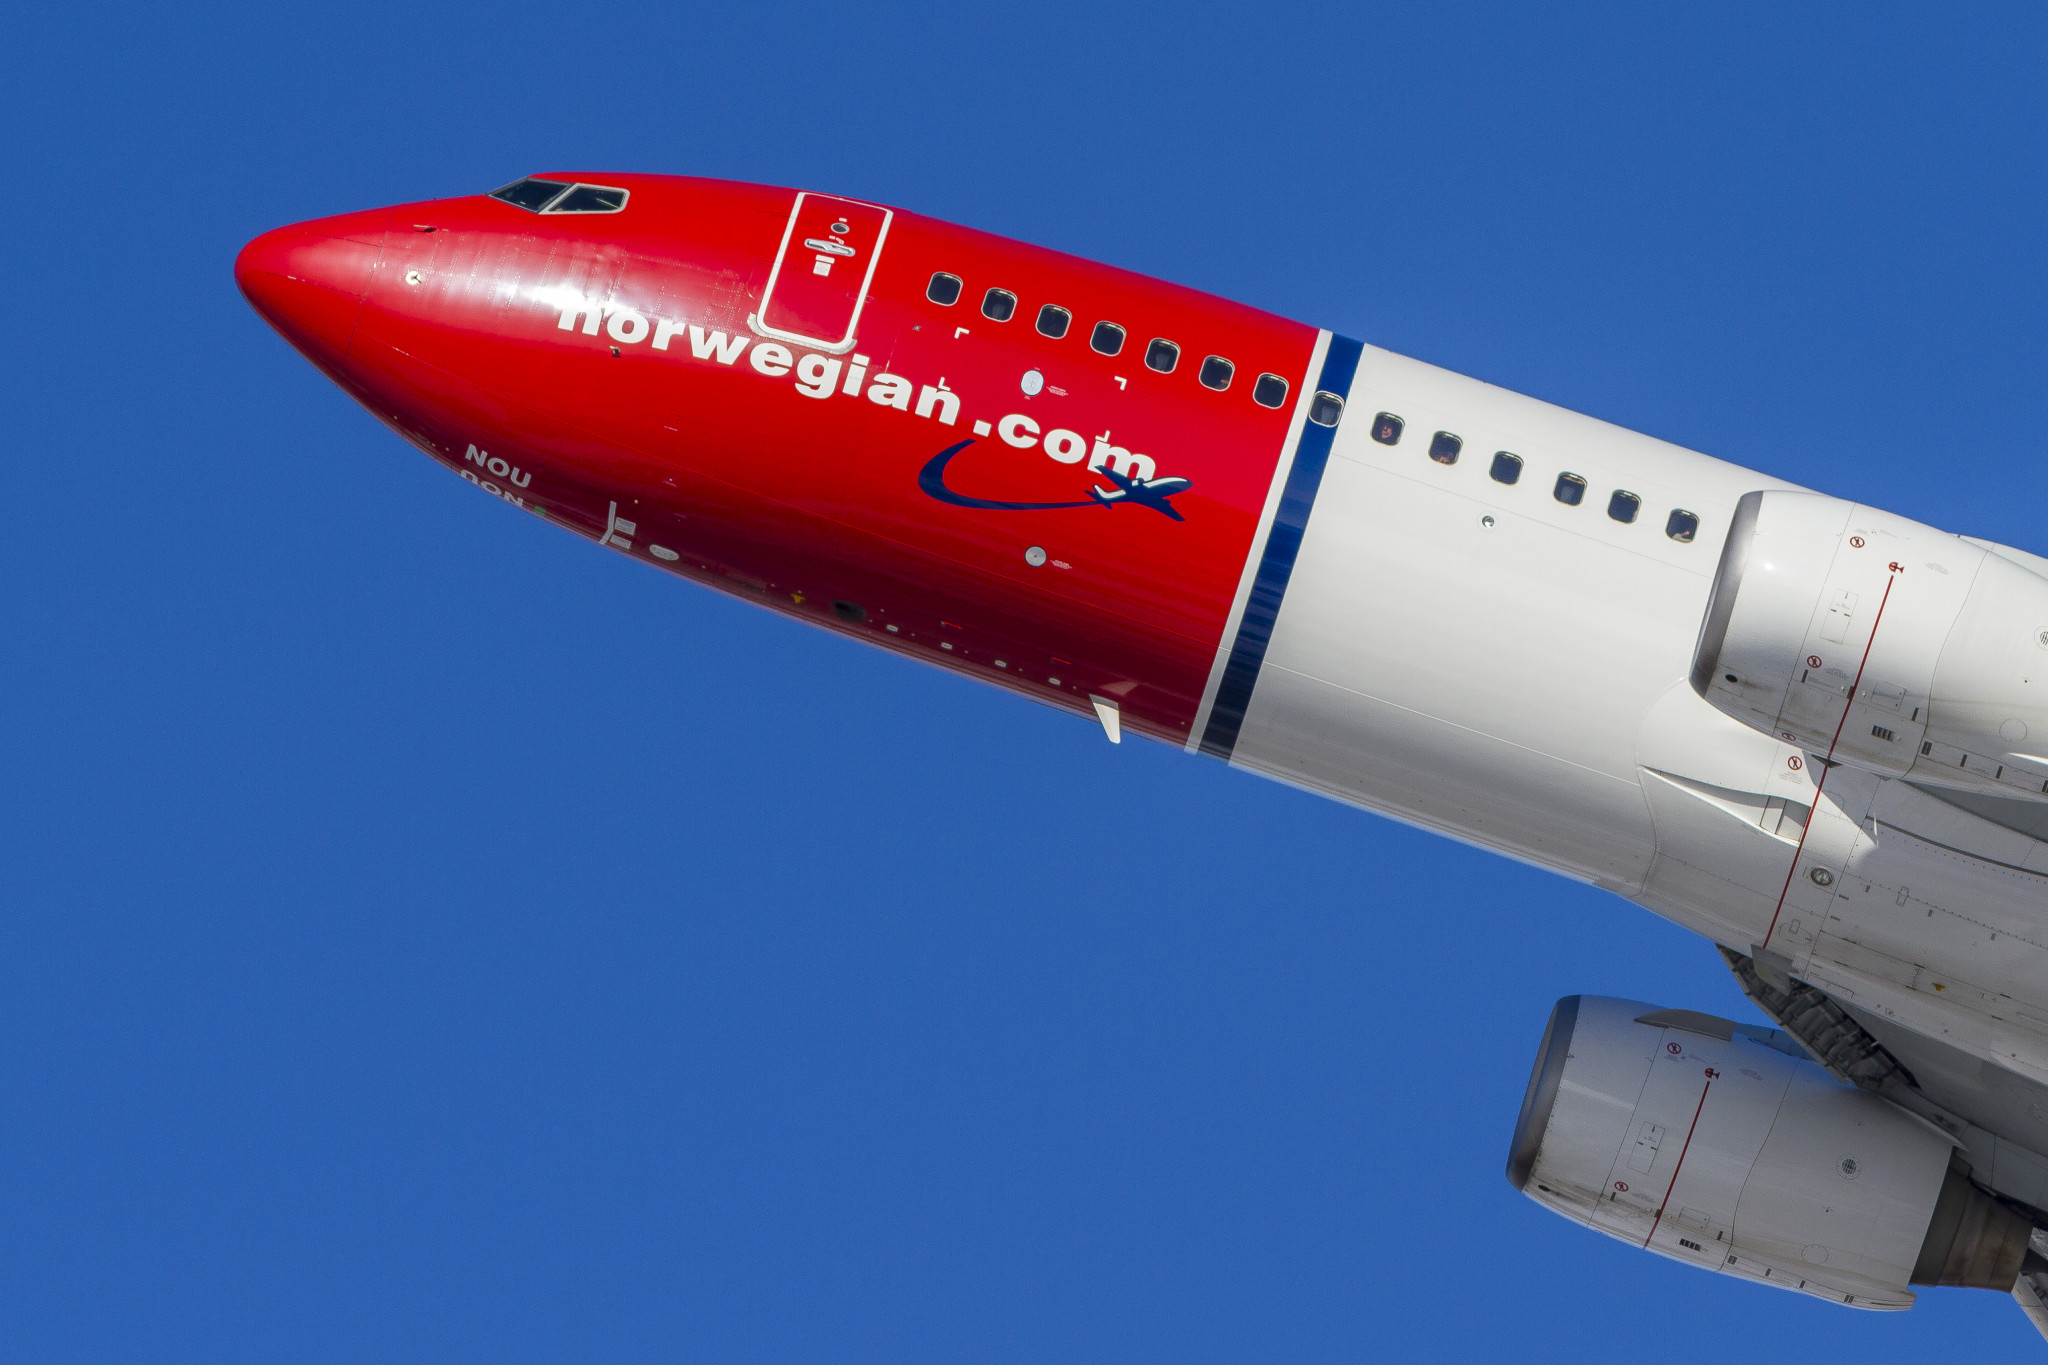 Norwegian Air Shuttle ASA